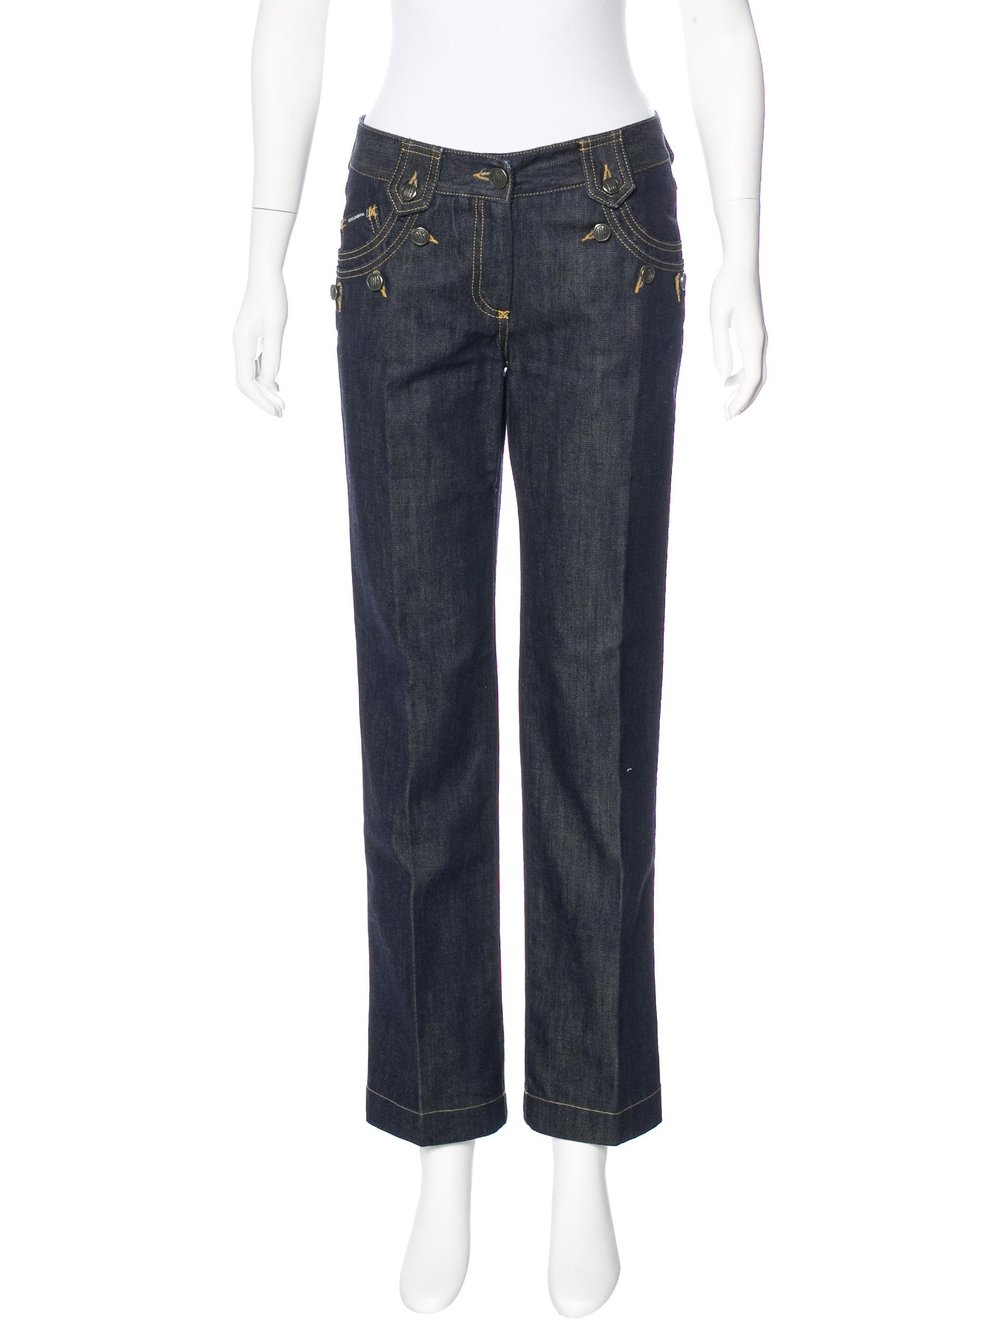 DOLCE & GABBANA Mid Rise Straight-Leg Jeans; Size: US 4; $95.00